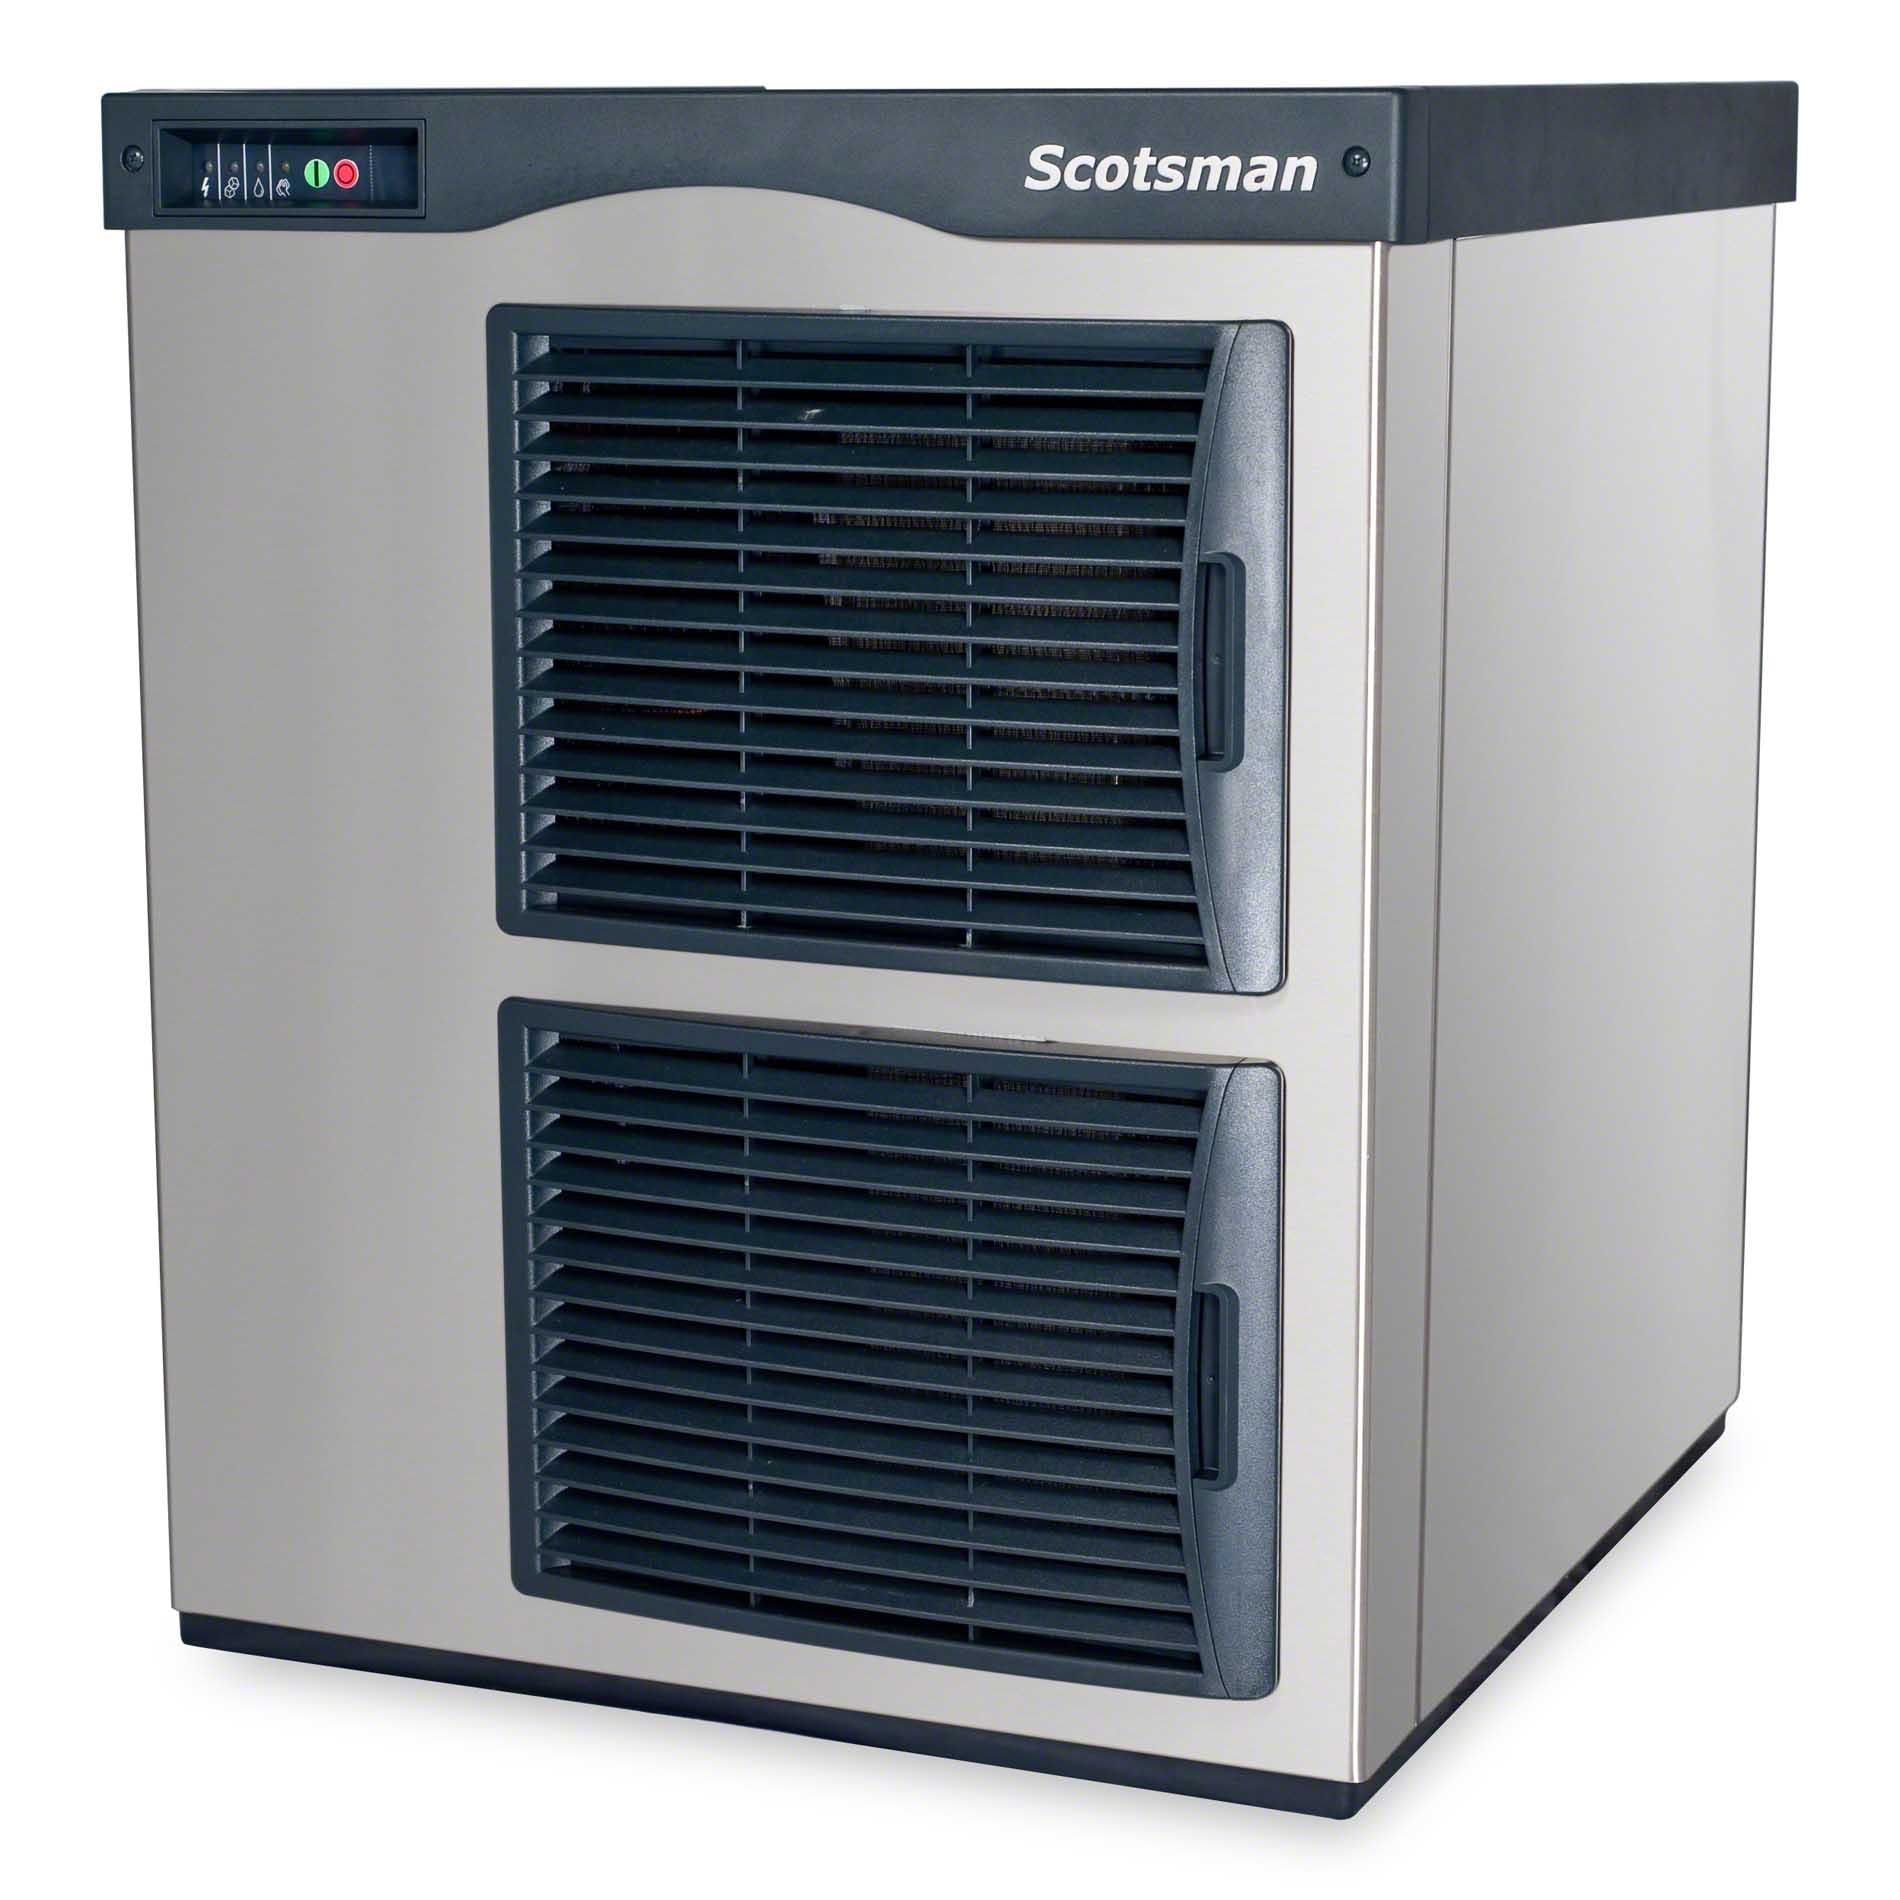 Scotsman - F1222A-32A 1100 lb Flake Ice Machine - Prodigy Series Ice machine sold by Food Service Warehouse